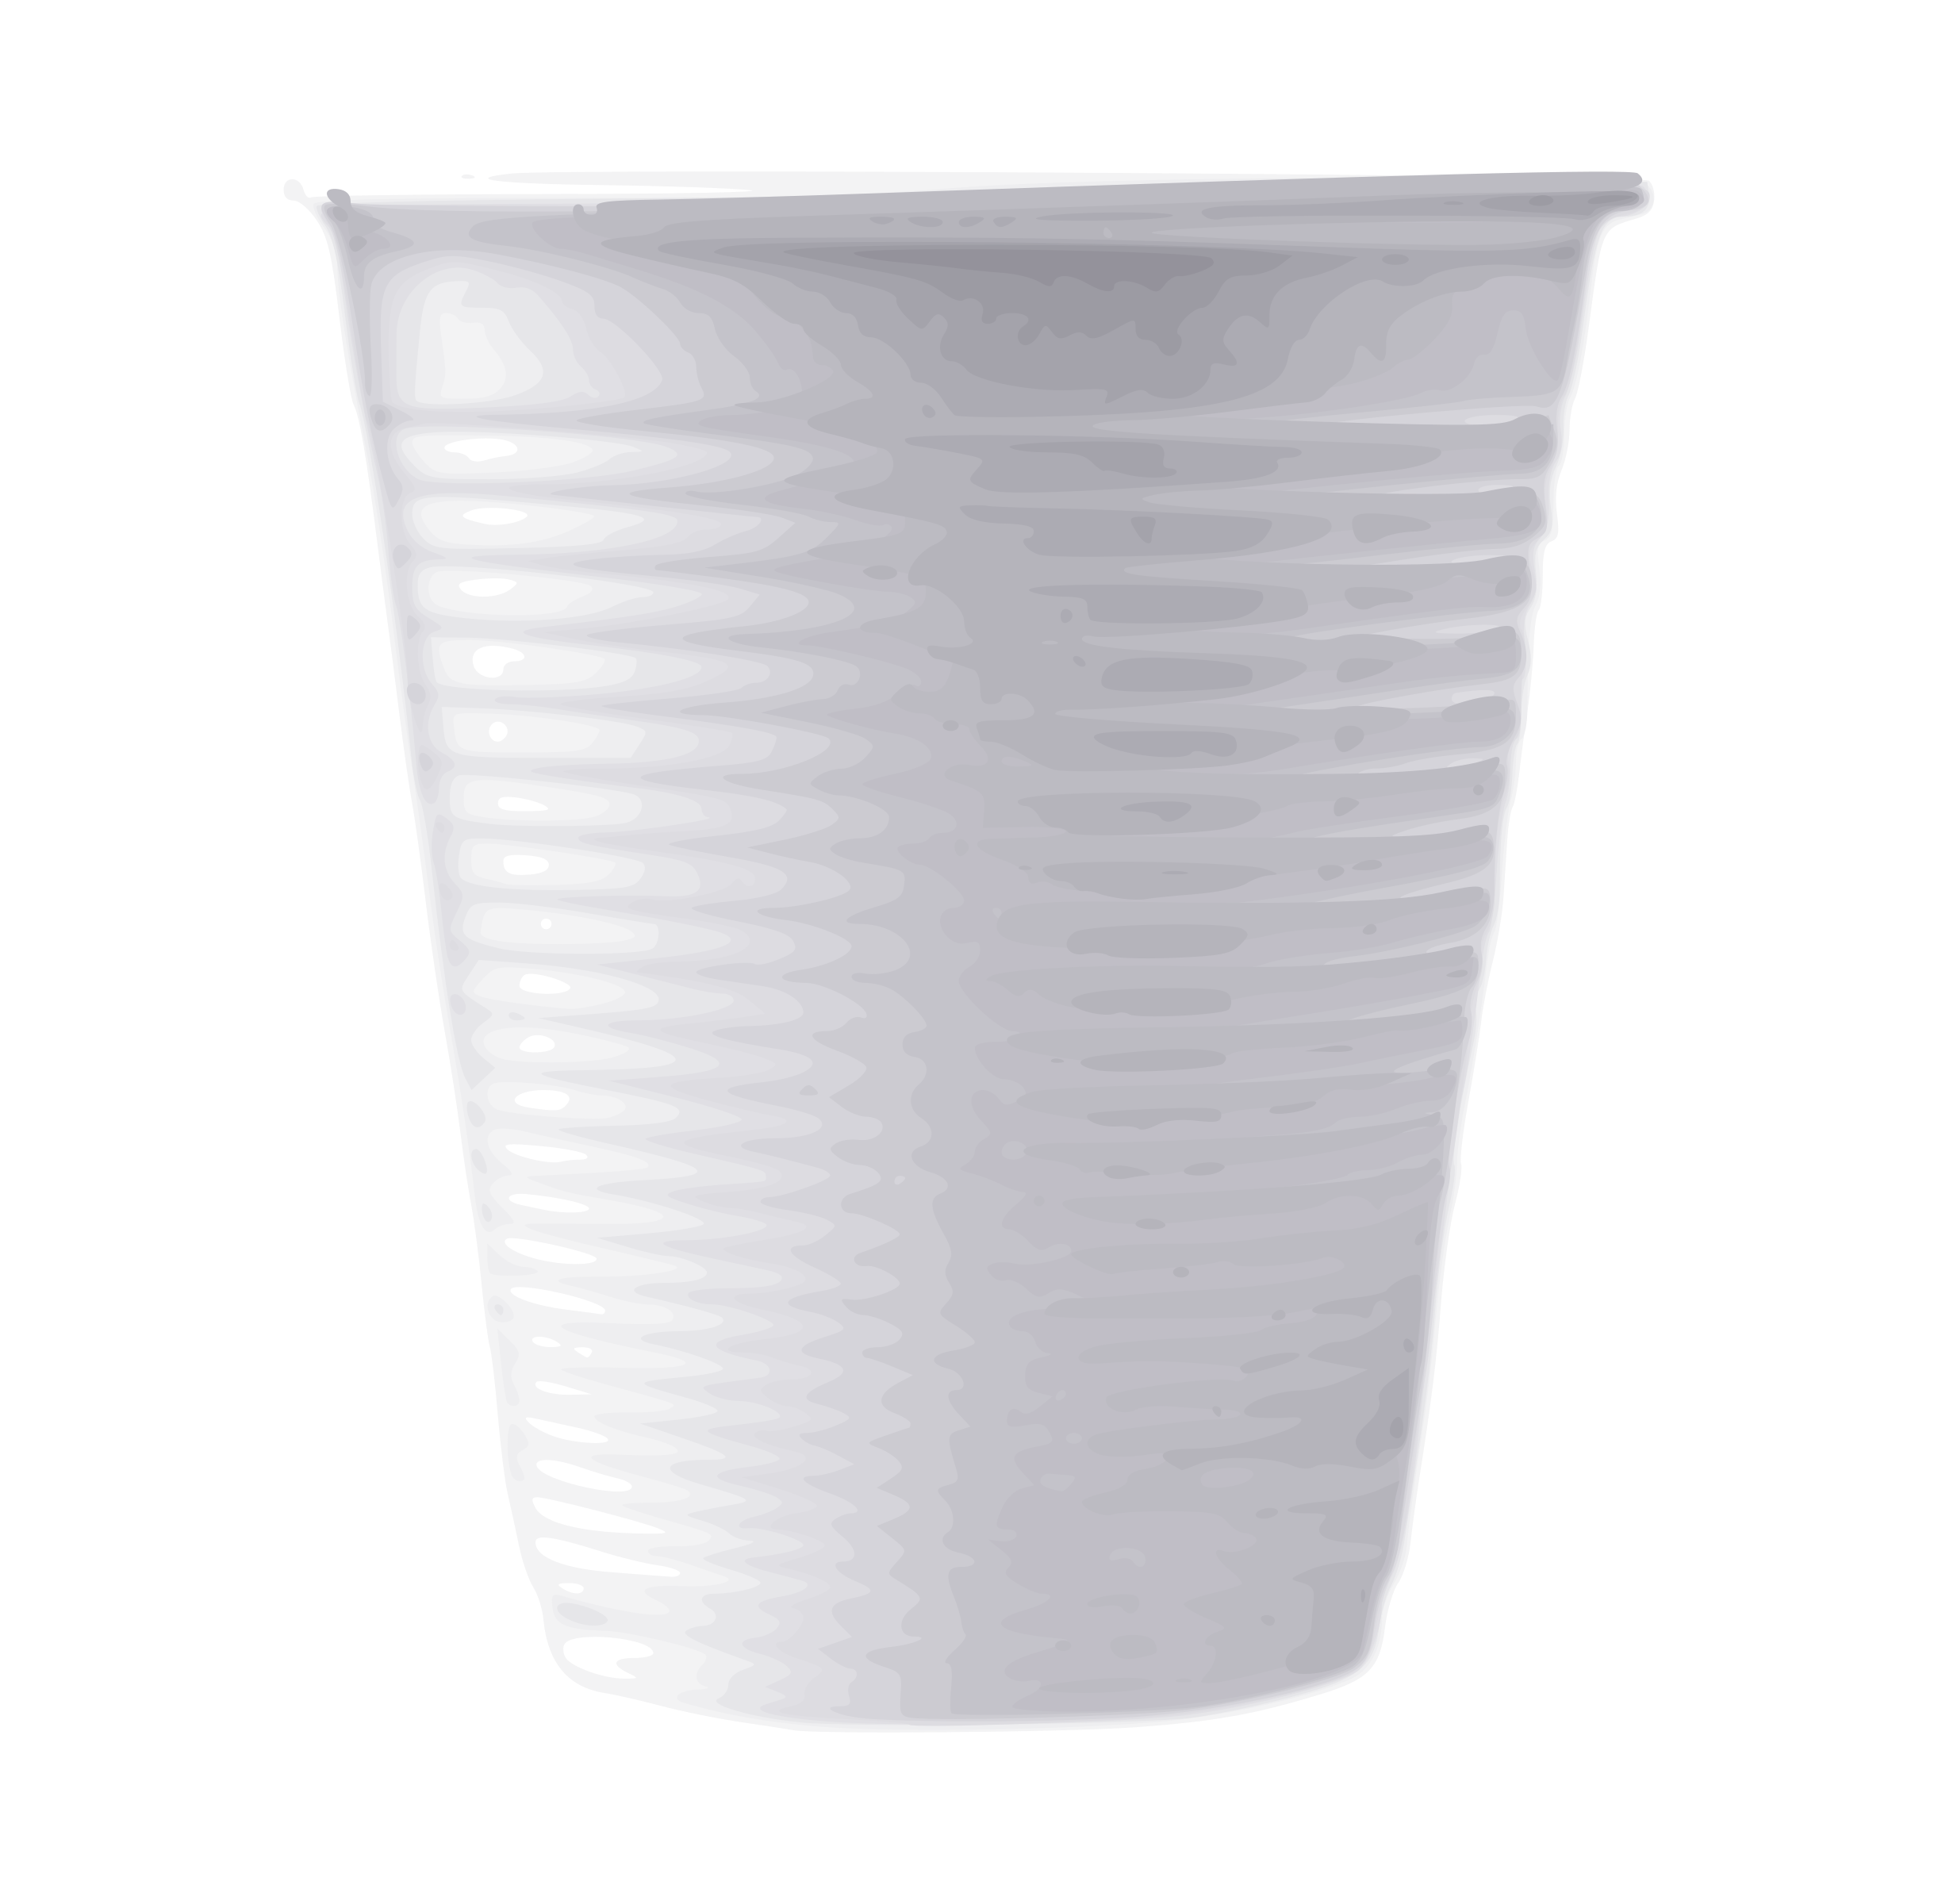 Plastic cup png. Icons free and downloads